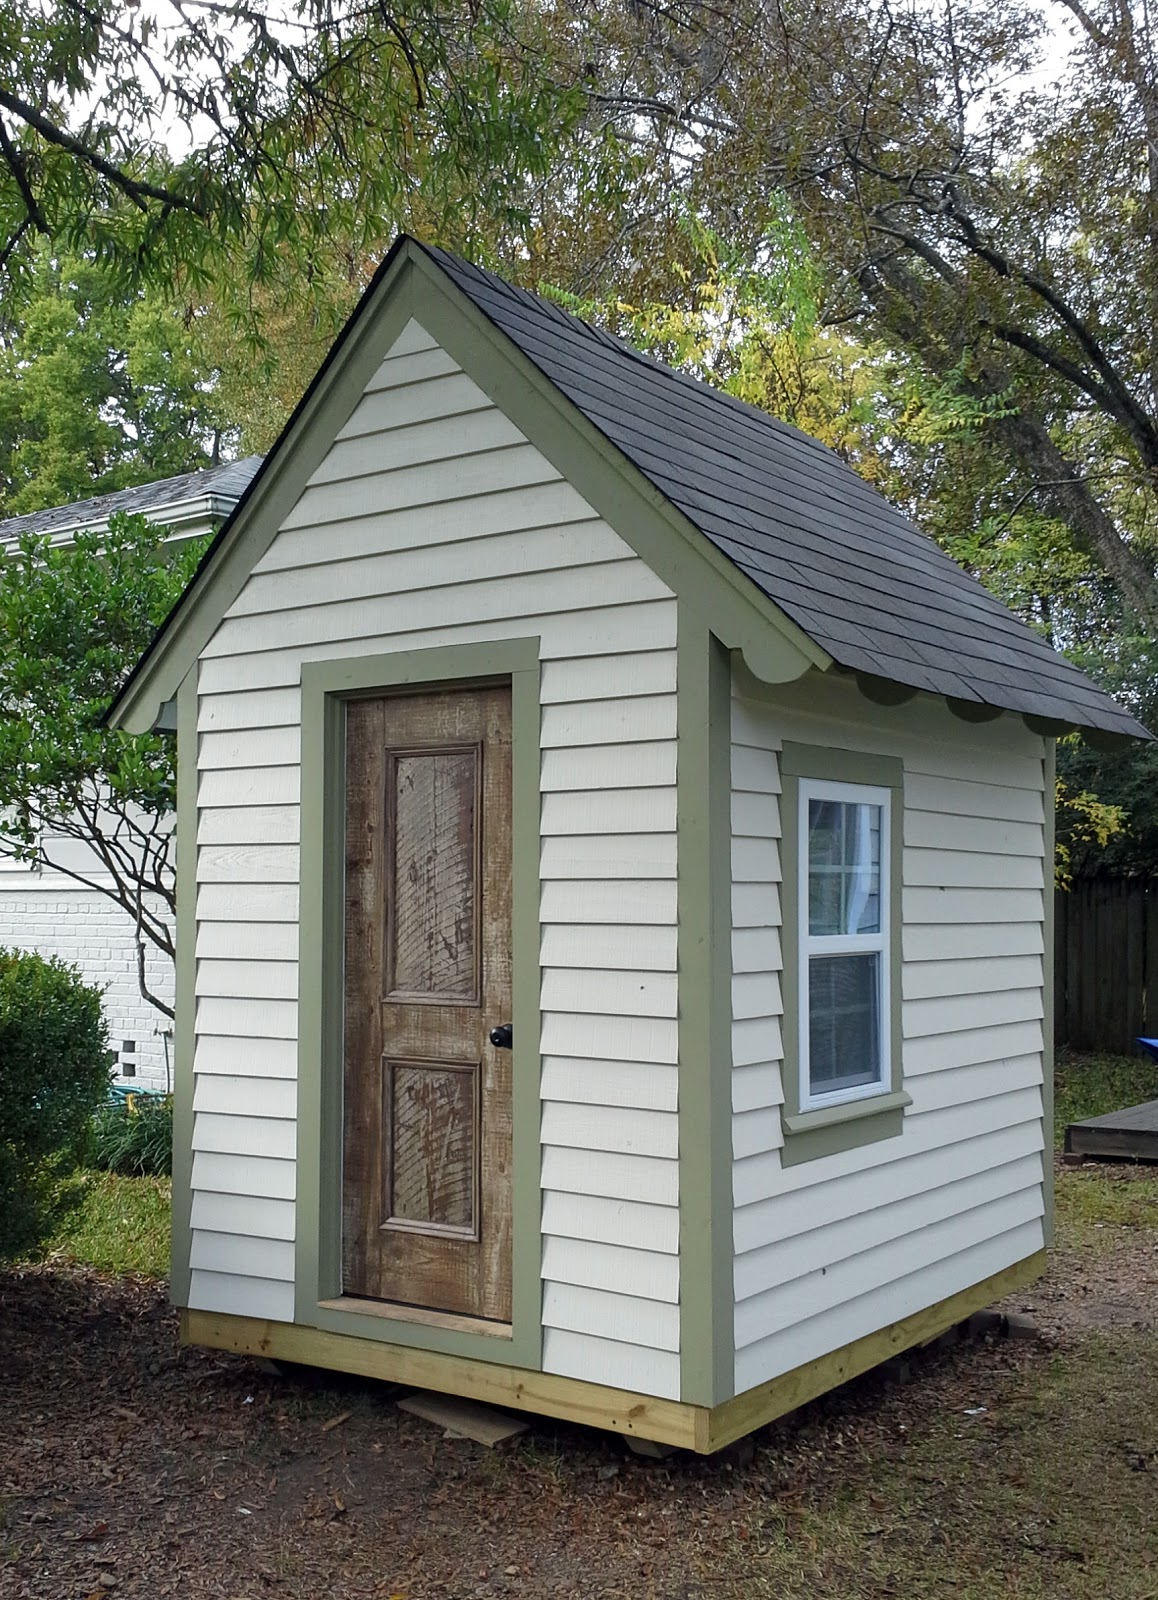 Aplaceimagined free playhouse plans for Simple outdoor playhouse plans